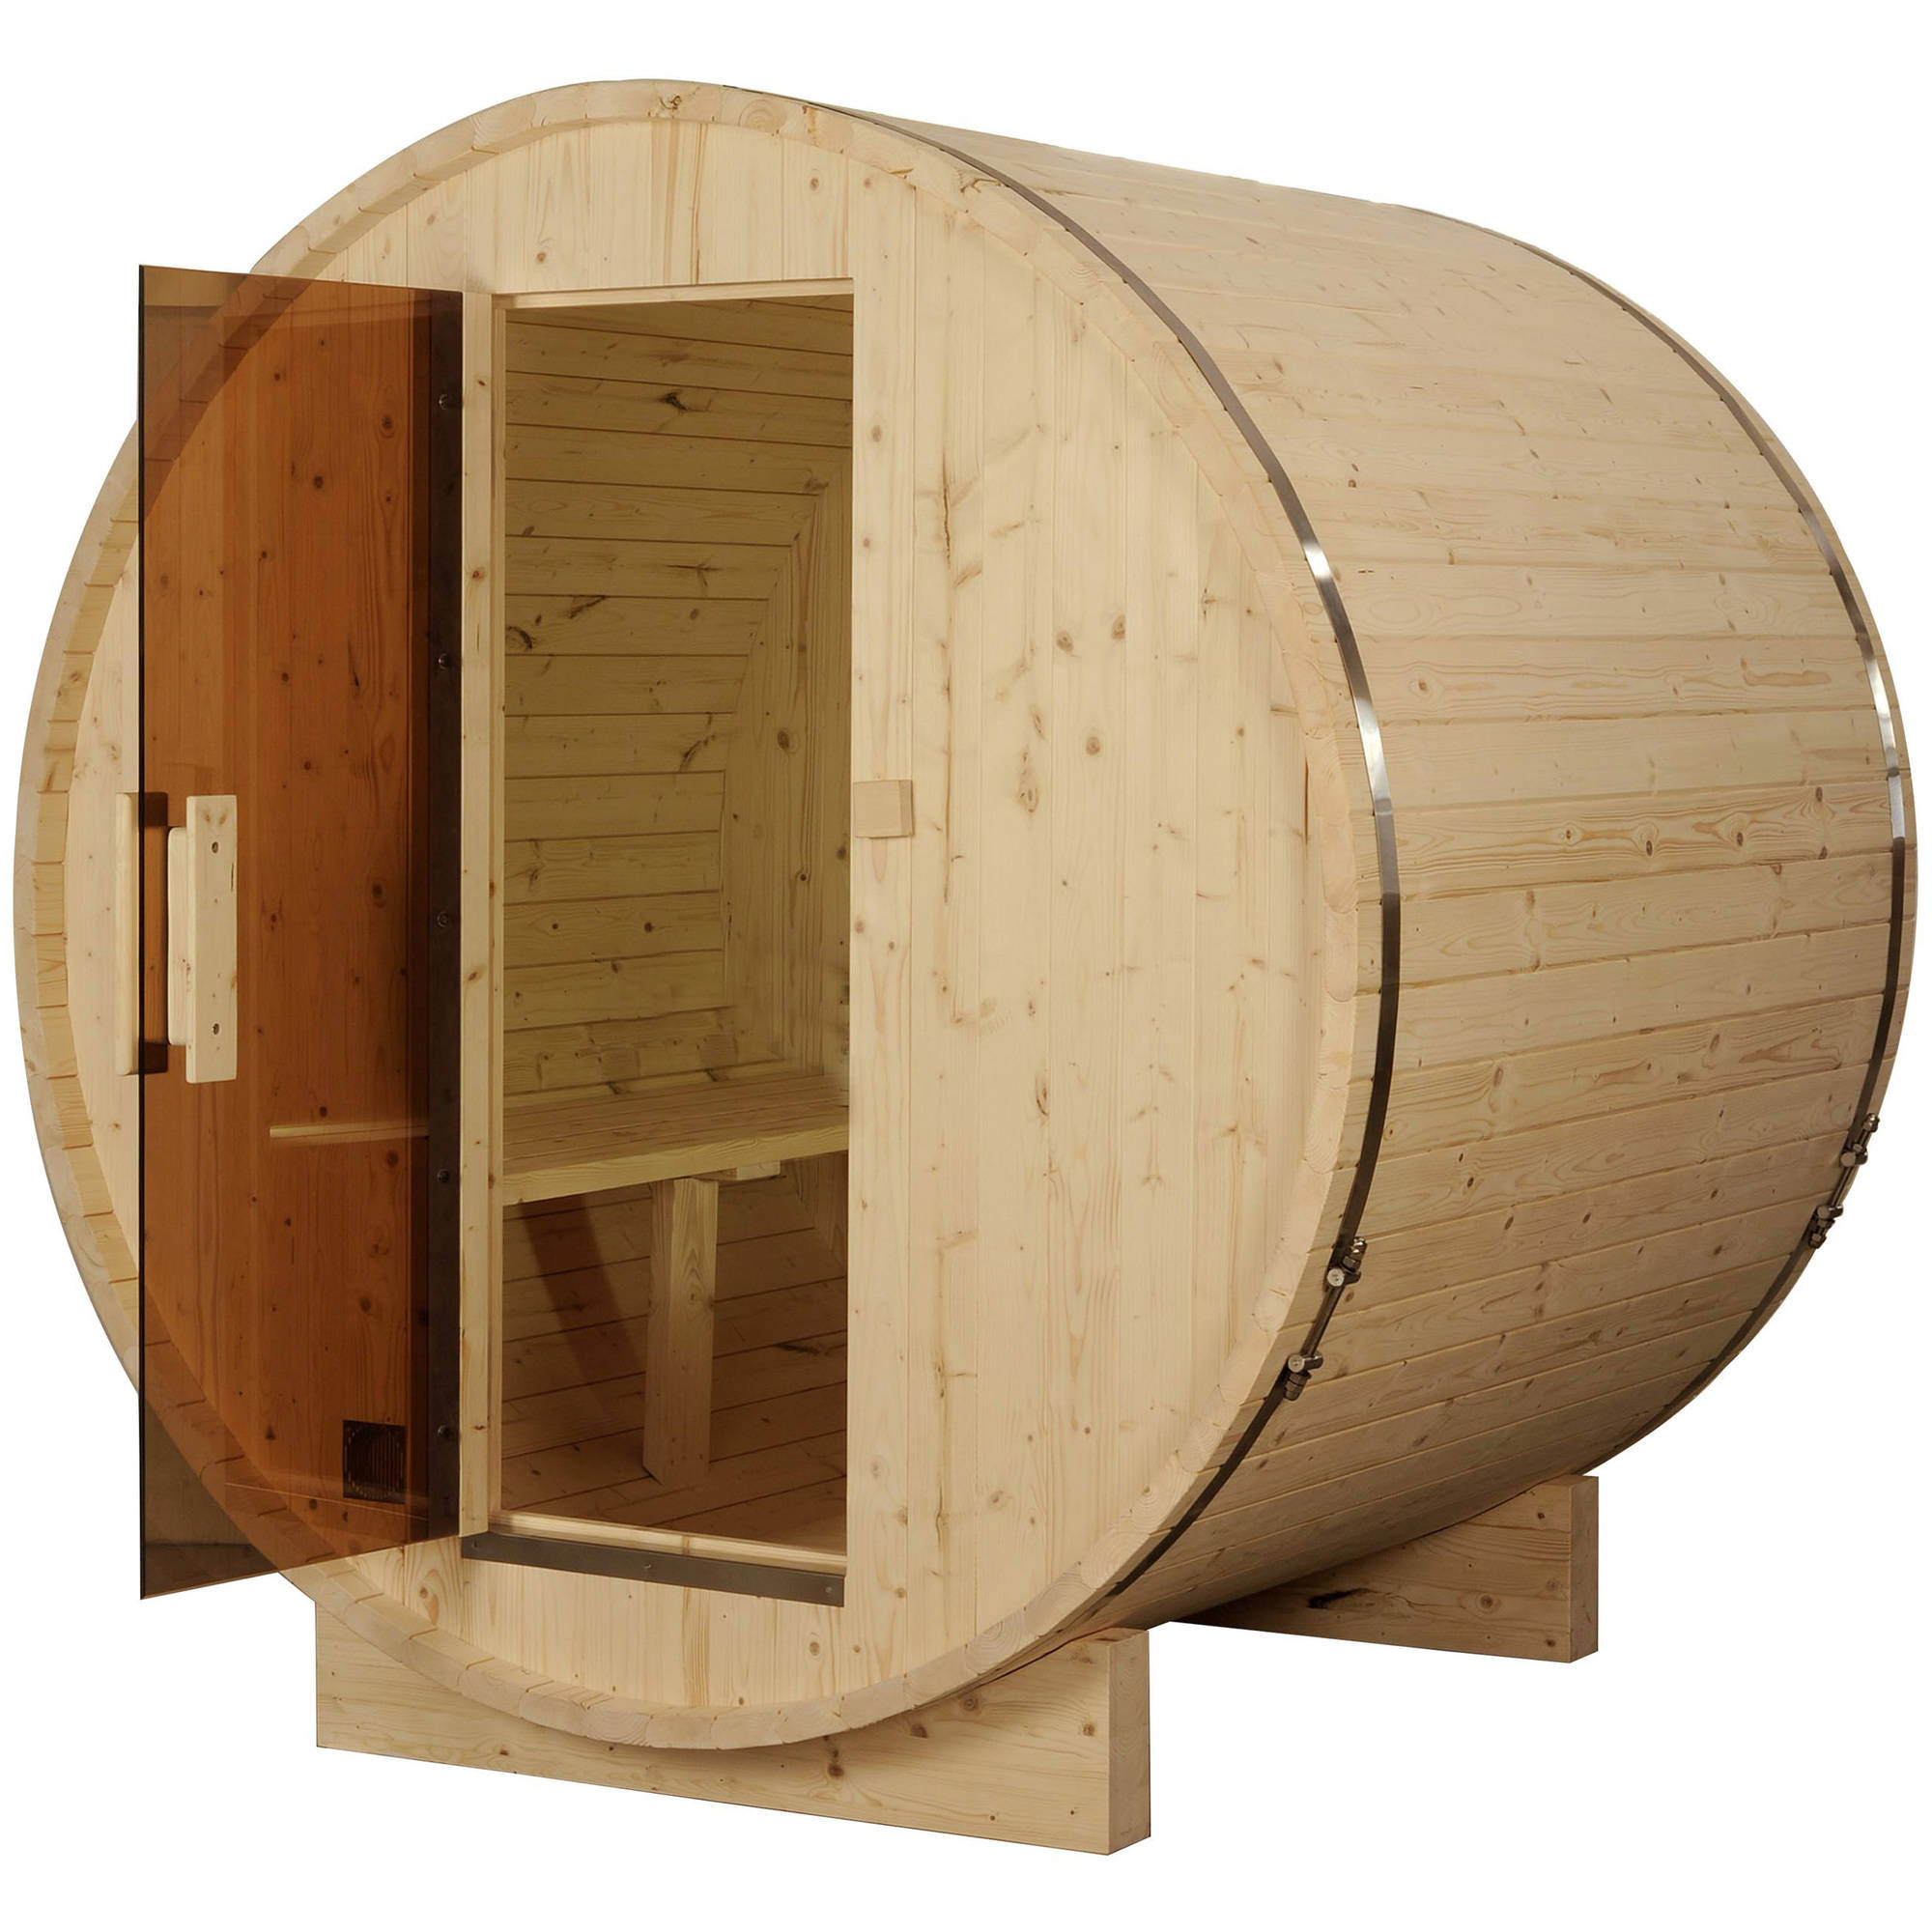 ALEKO SB4PINE 4 Person Indoor and Outdoor White Pine Wood Dry Wet Barrel Sauna with... by ALEKO